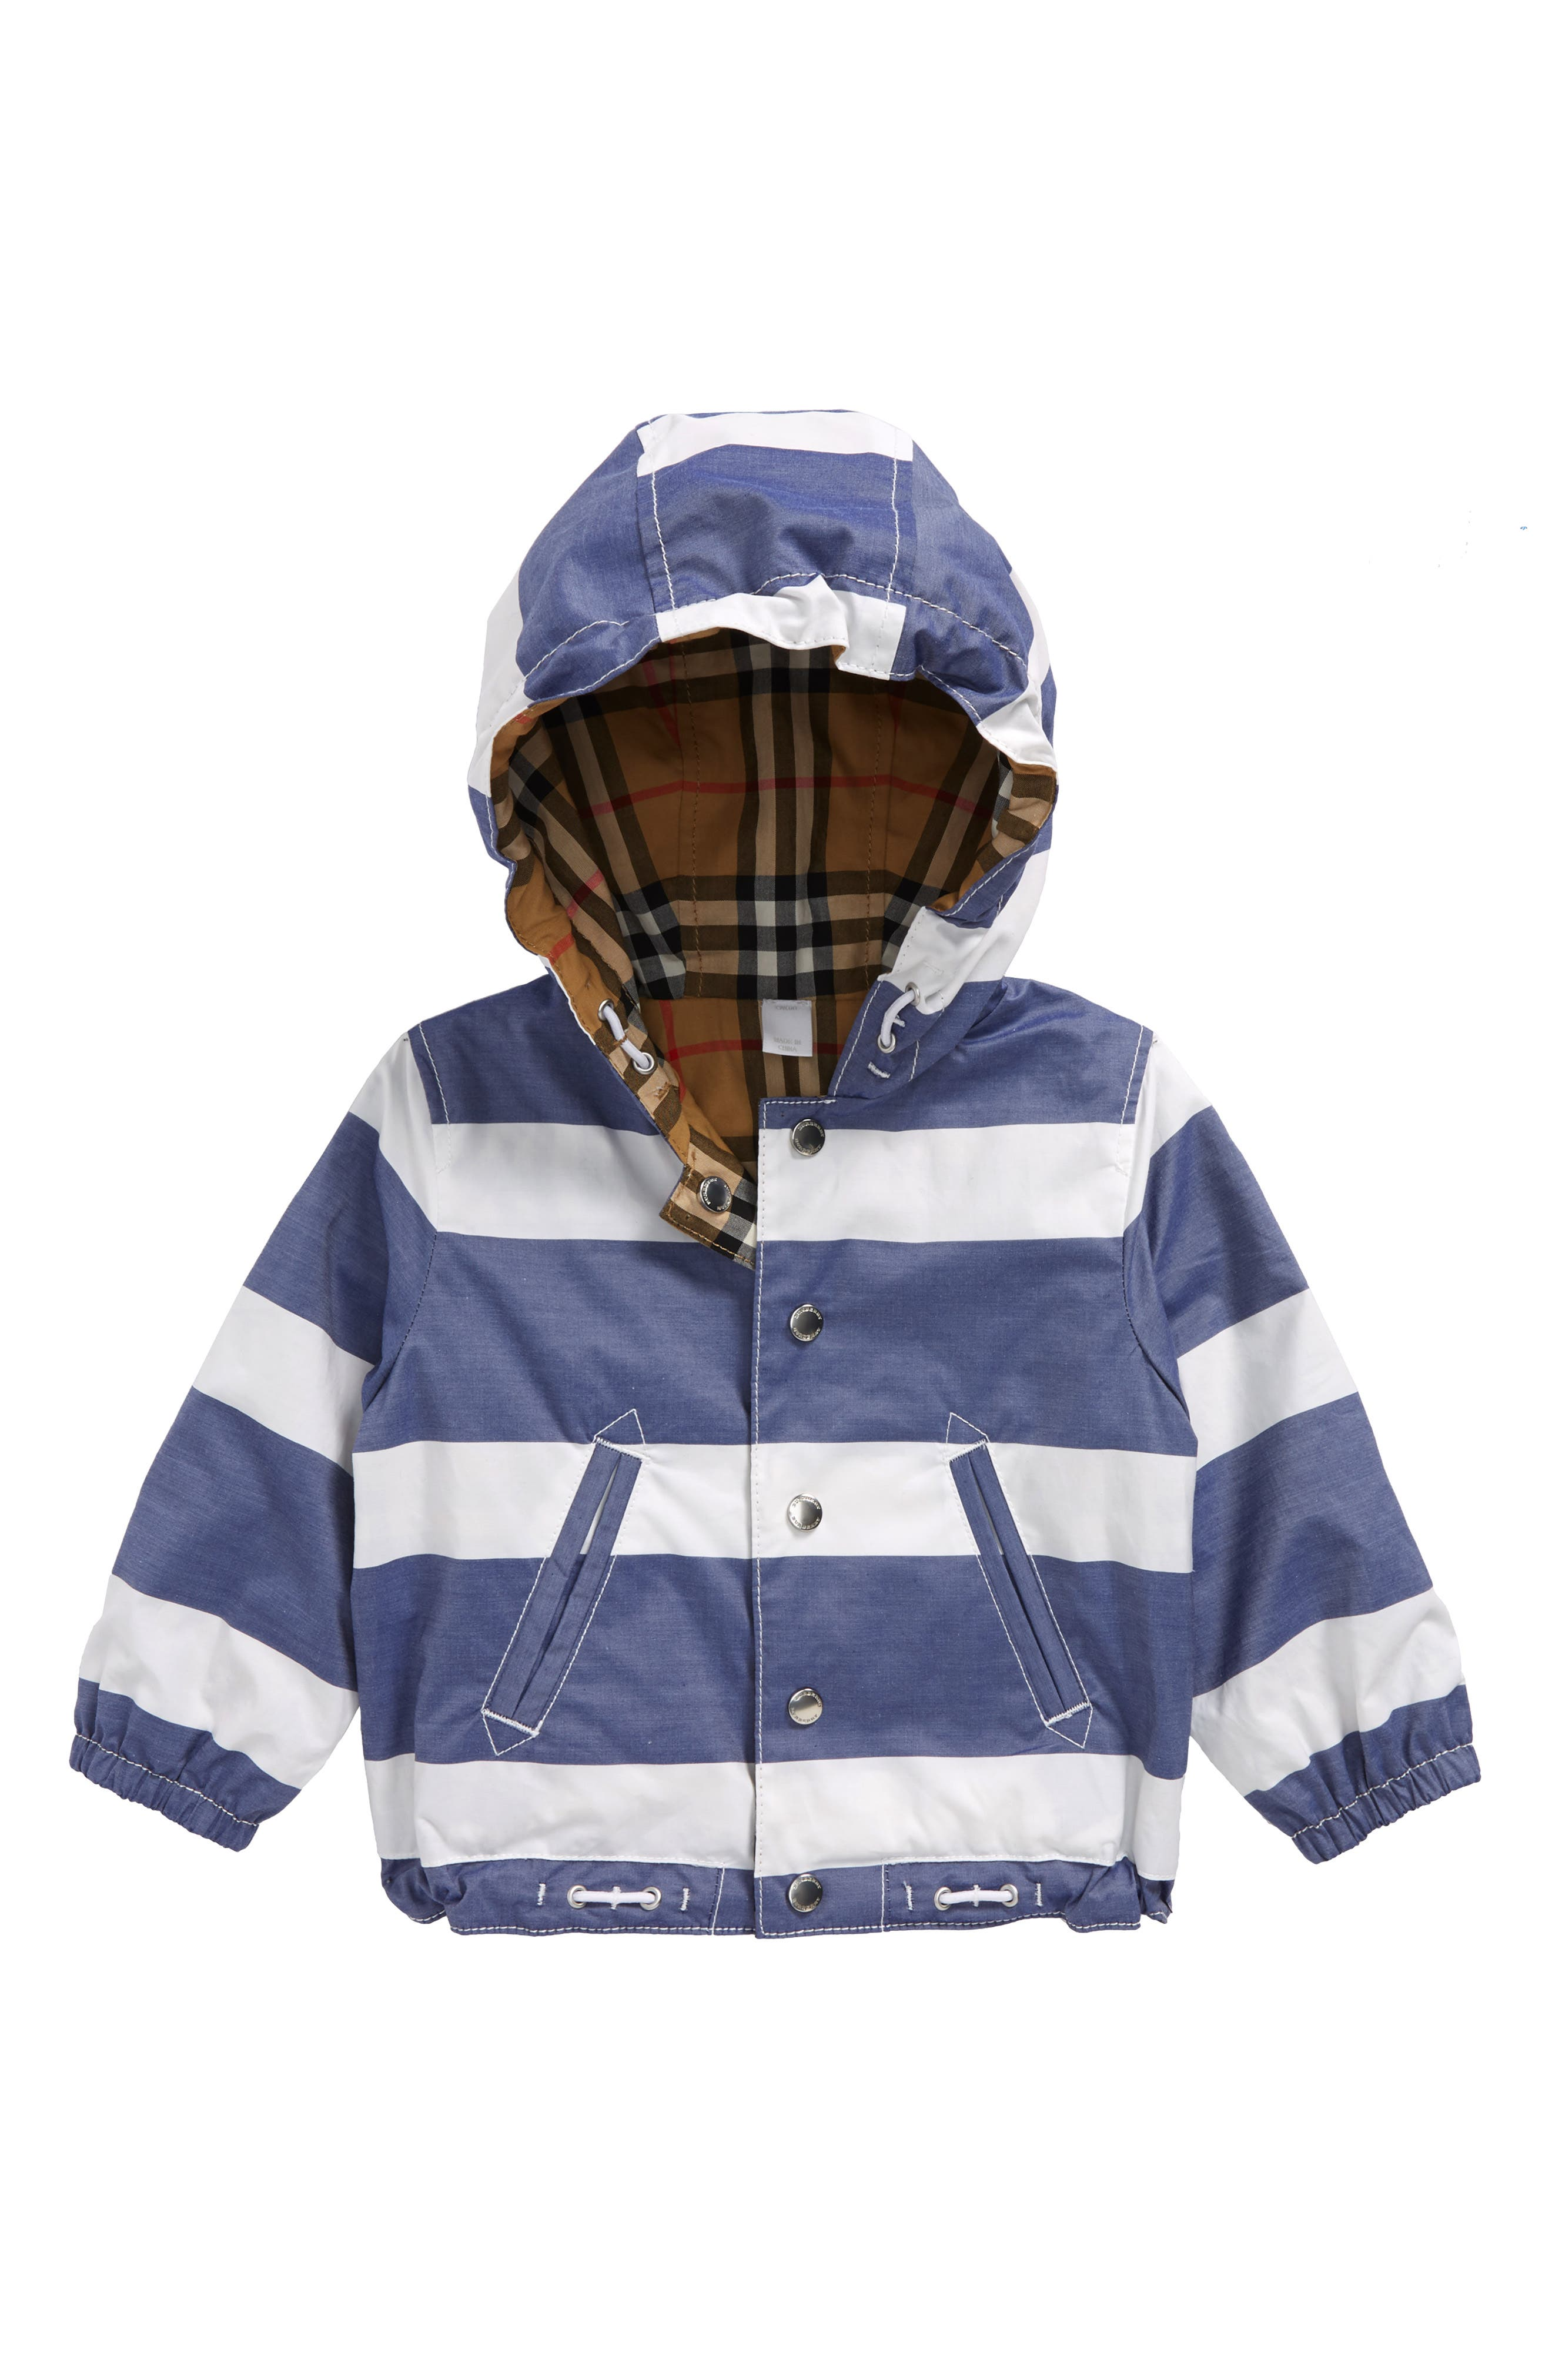 Mayer Reversible Hooded Jacket,                             Main thumbnail 1, color,                             Navy/ White